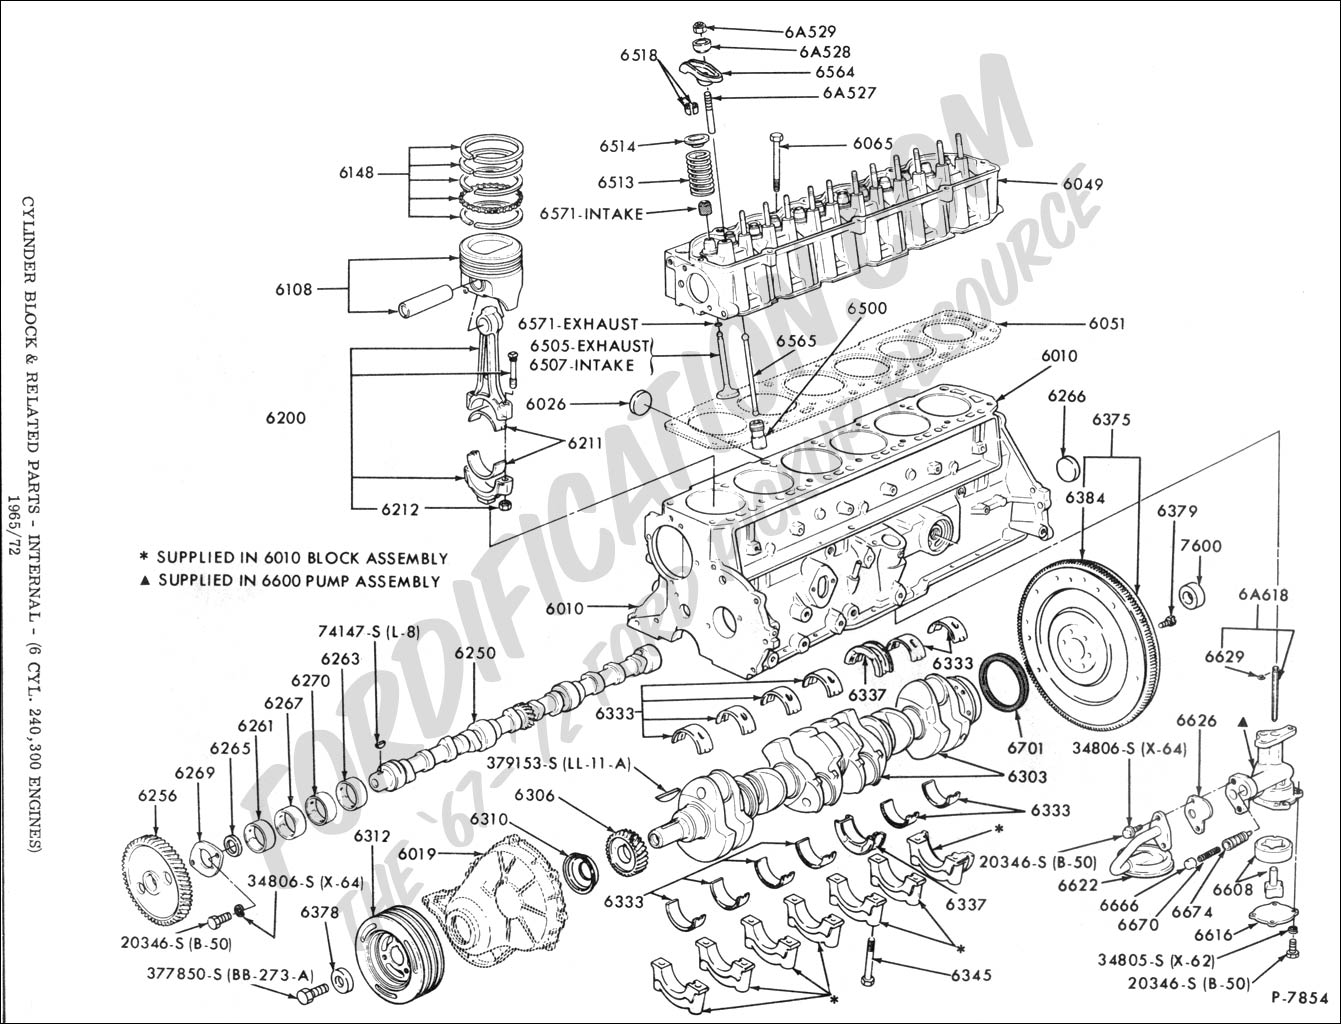 Chevy 6 Engine Diagram Basic Guide Wiring Duramax Schematic Ford Truck Technical Drawings And Schematics Section E Rh Fordification Com 66 Power Steering Liter Lbz Engian